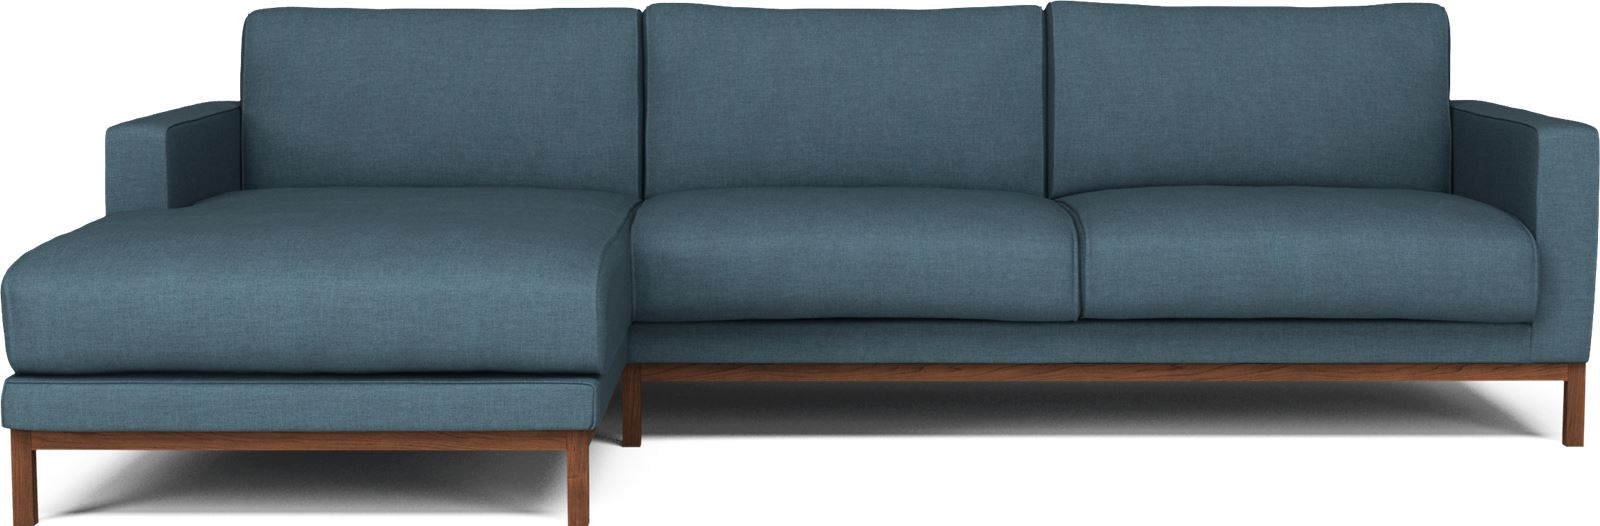 Bolia sofa bolia sofa with bolia sofa say hi to bolia for Bolia sofa